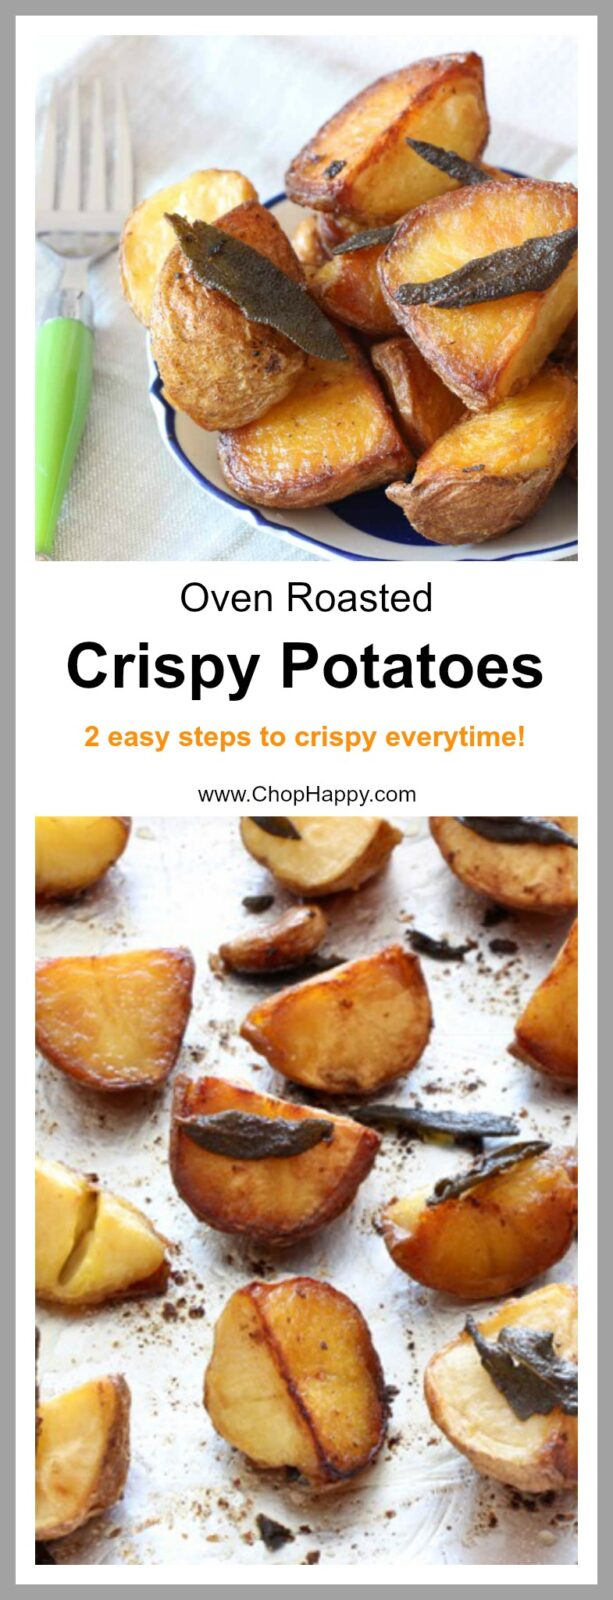 Crispy Oven Roasted Potato Recipe- is easy and two steps to perfect crispy potatoes every time. They are going to be your new family favorite treat. www.ChopHappy.com